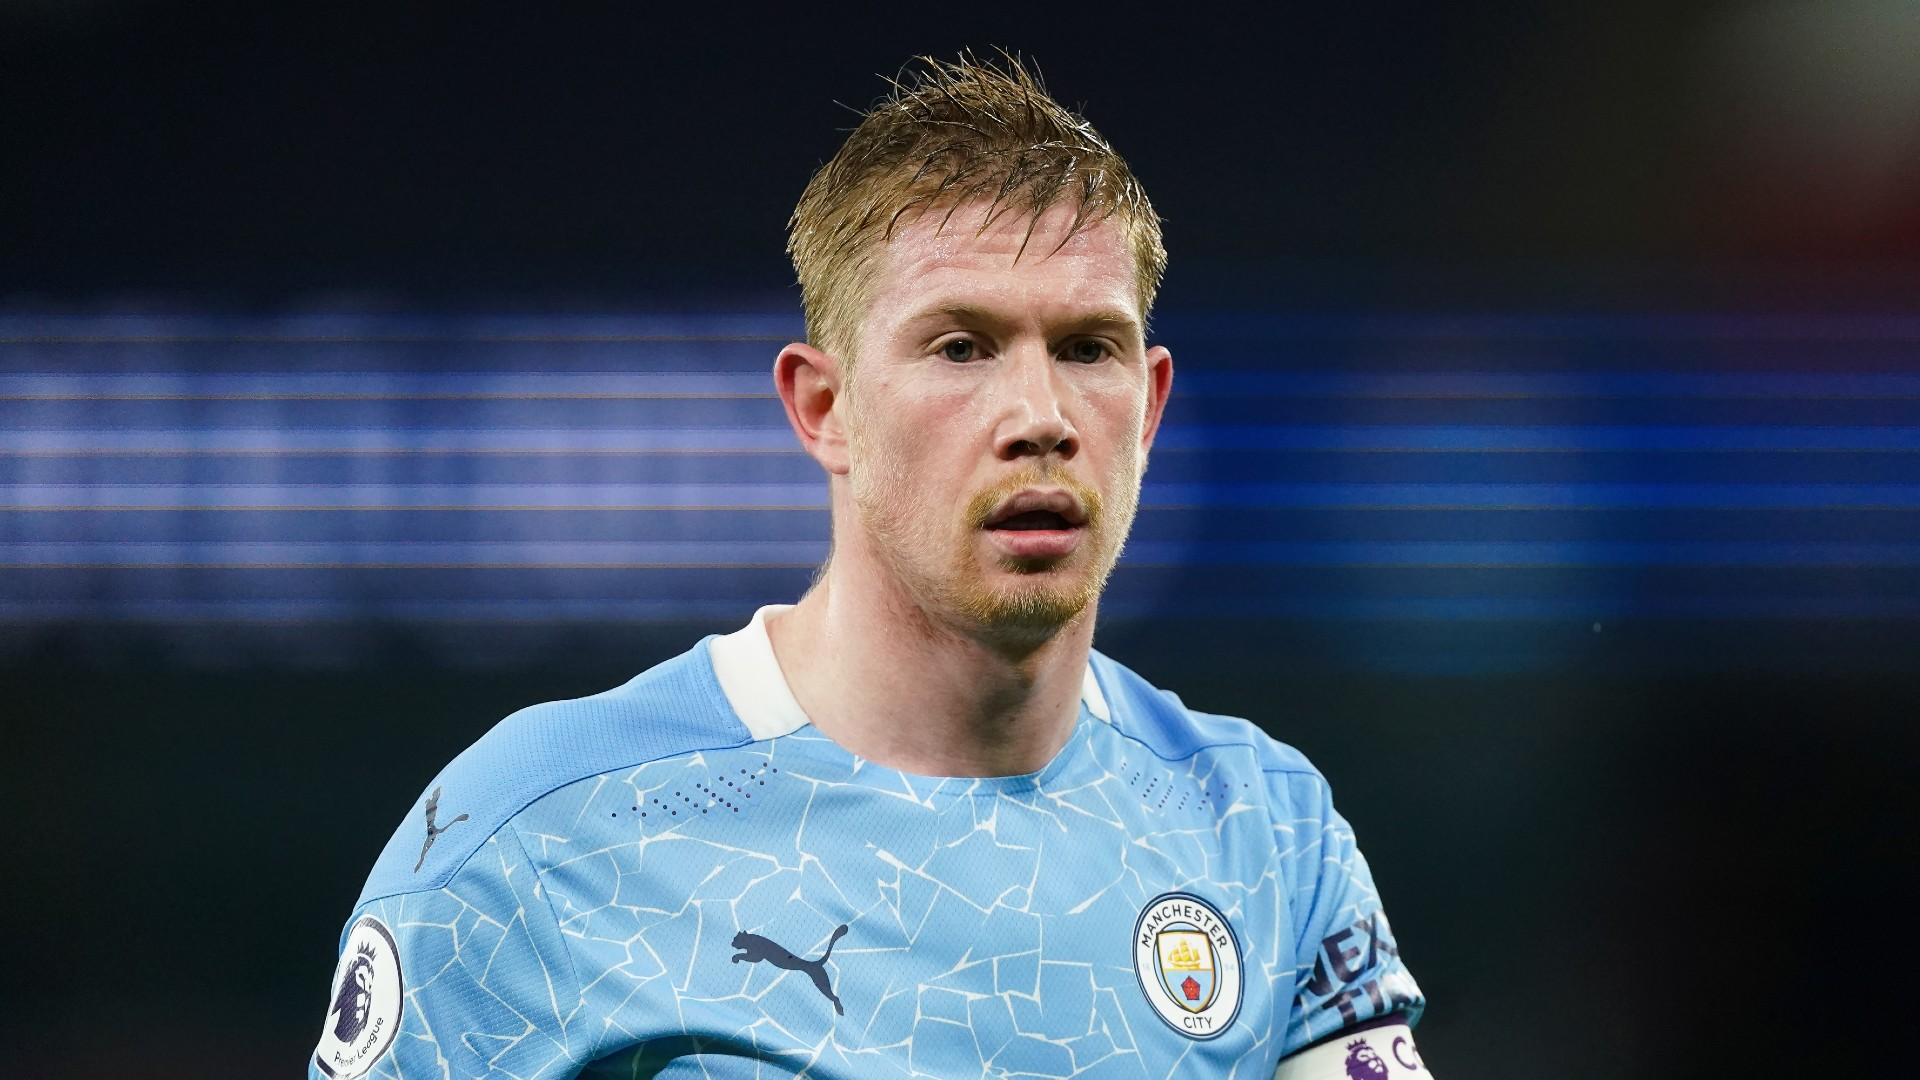 De Bruyne runs like a player from the Conference - Guardiola hails Man City star